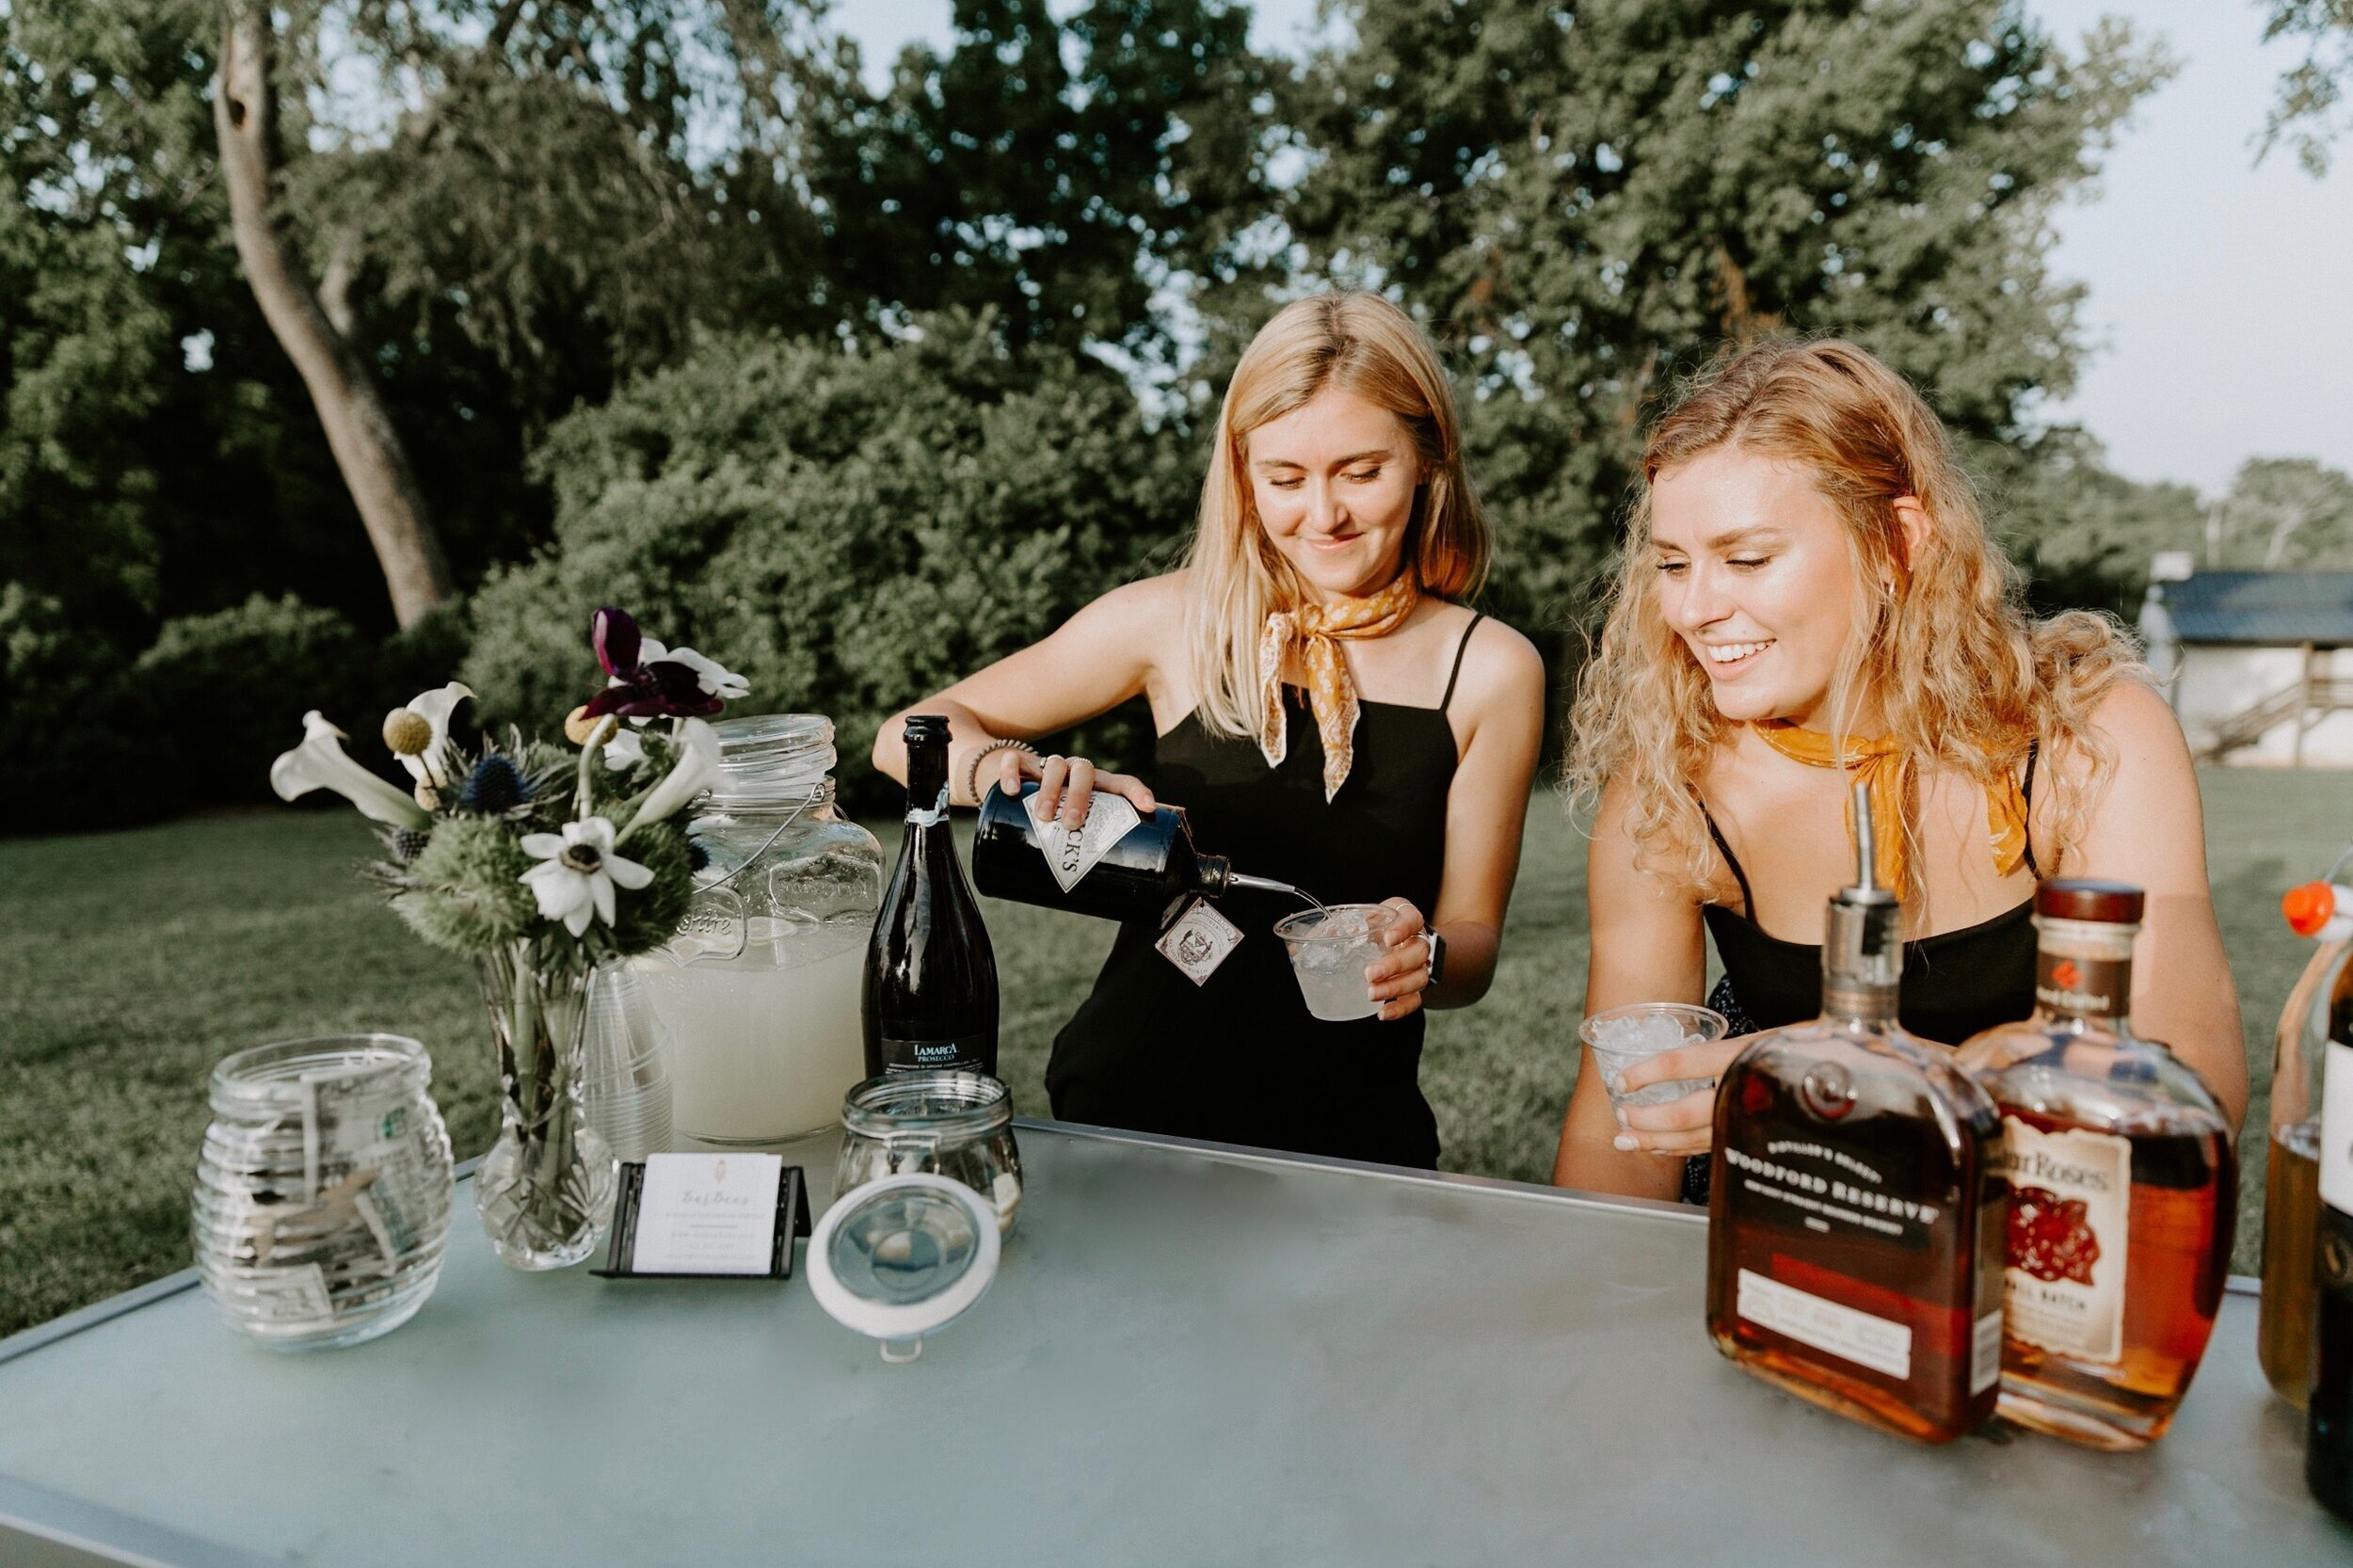 The Barbees (The Bartending Experience Like Never Before)